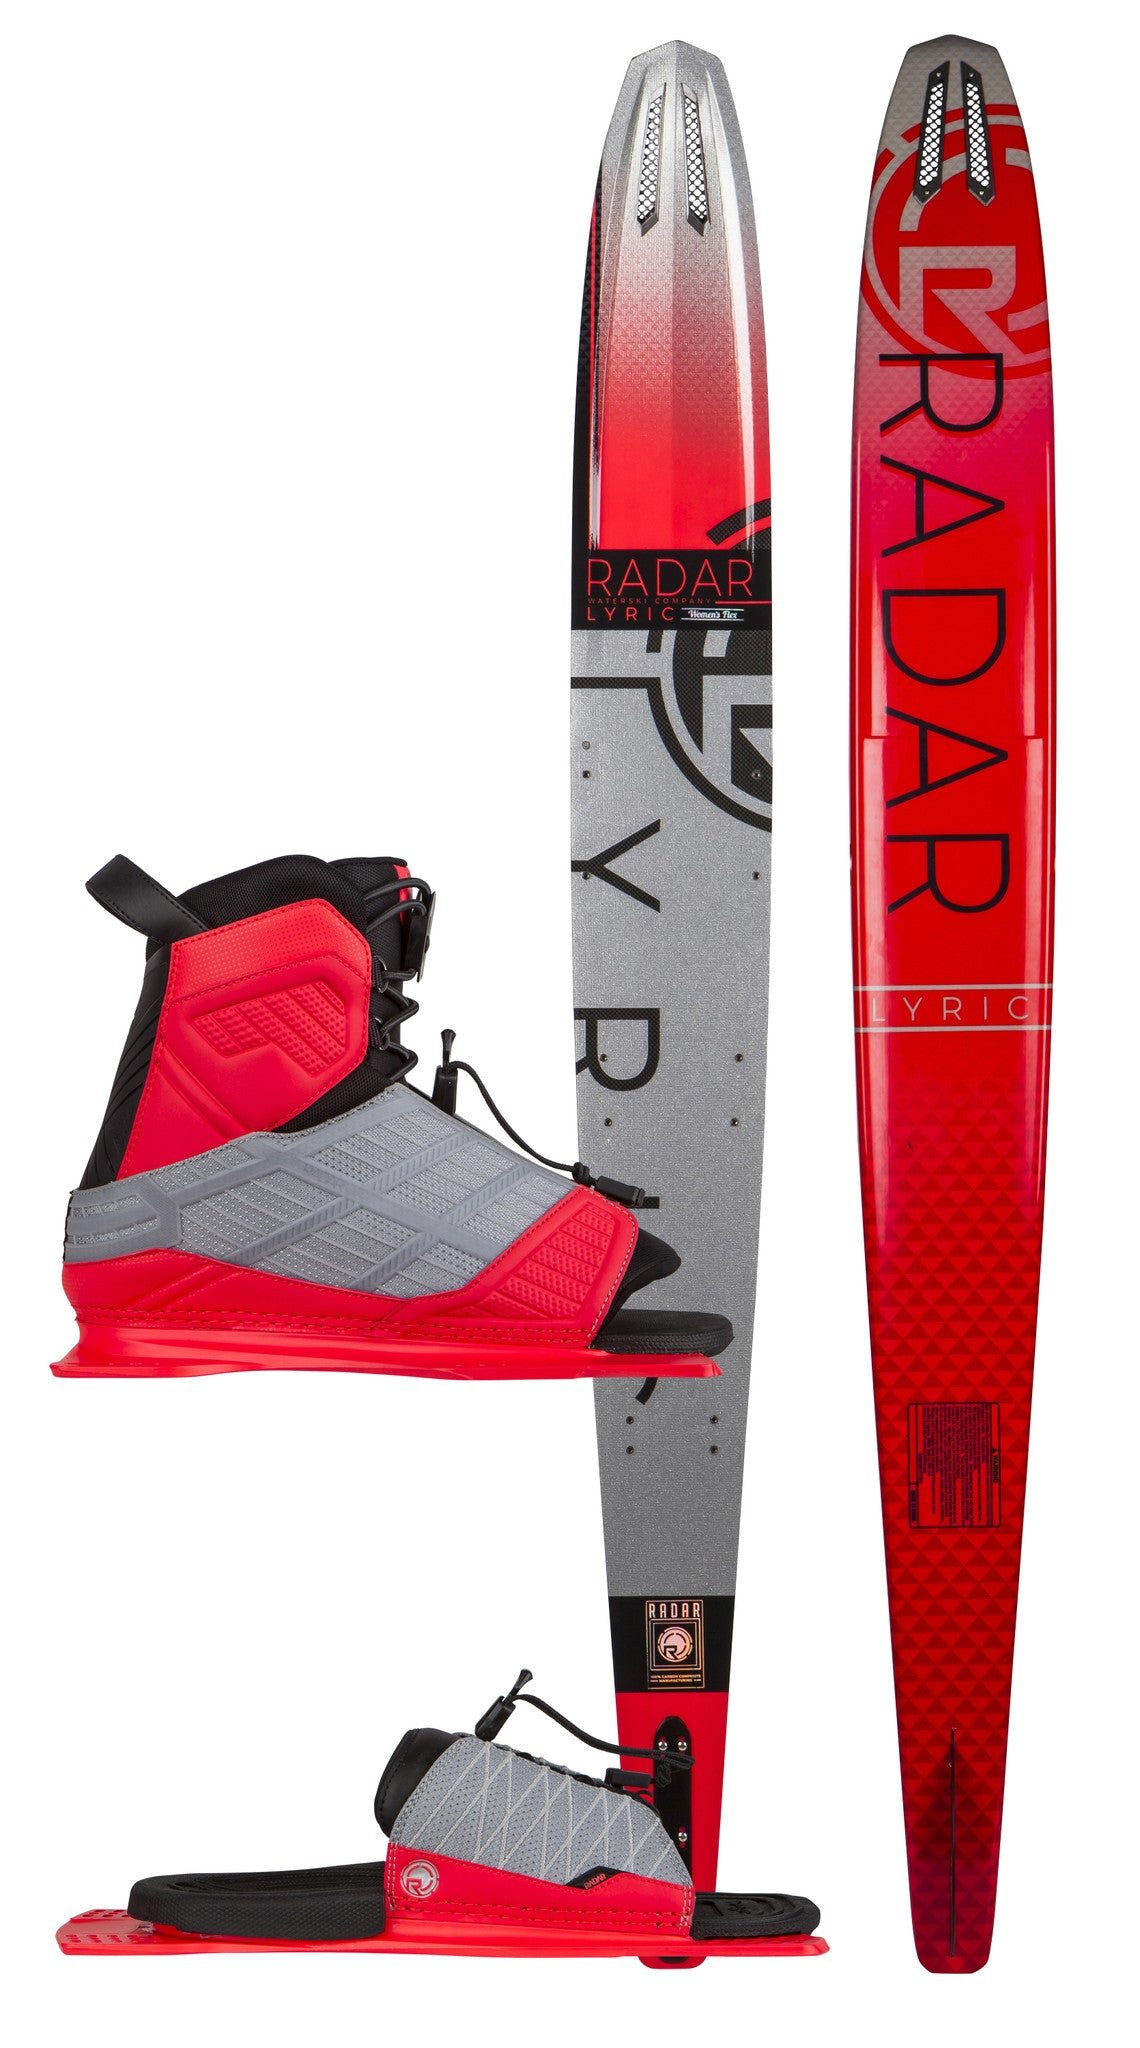 Radar Lyric Package - Water Ski with boots and RTP / HRTP